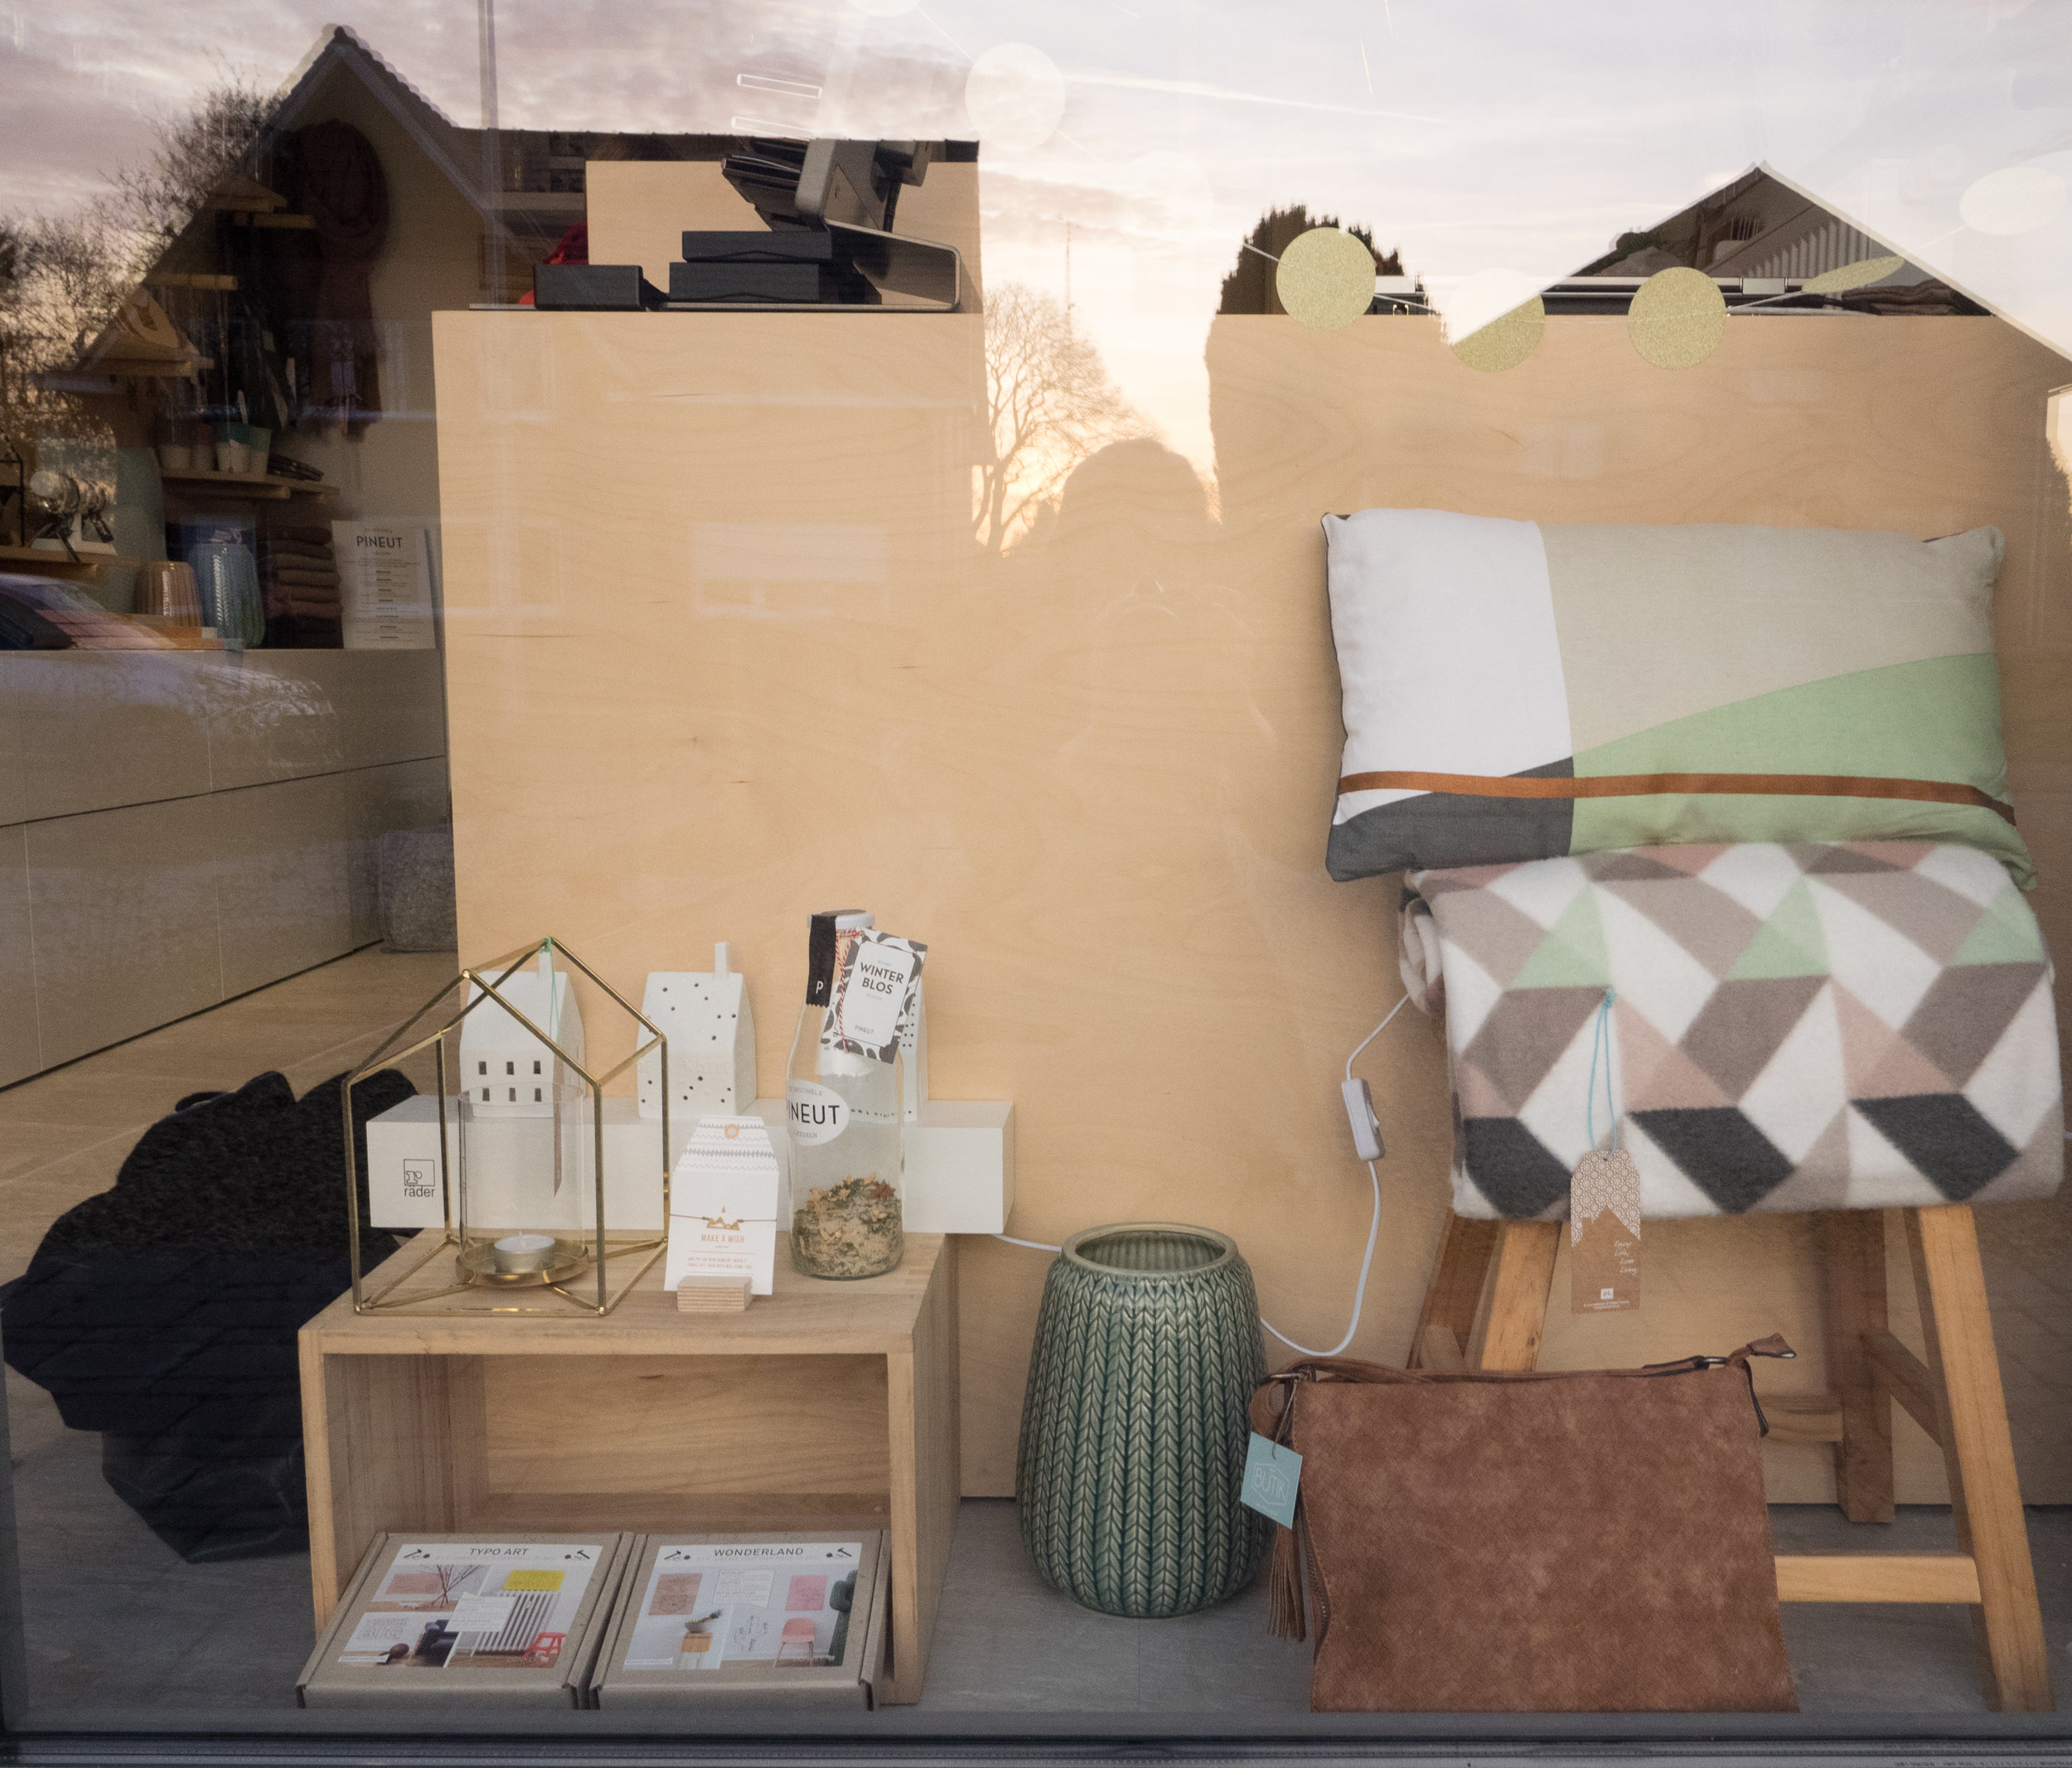 The lovely window display.